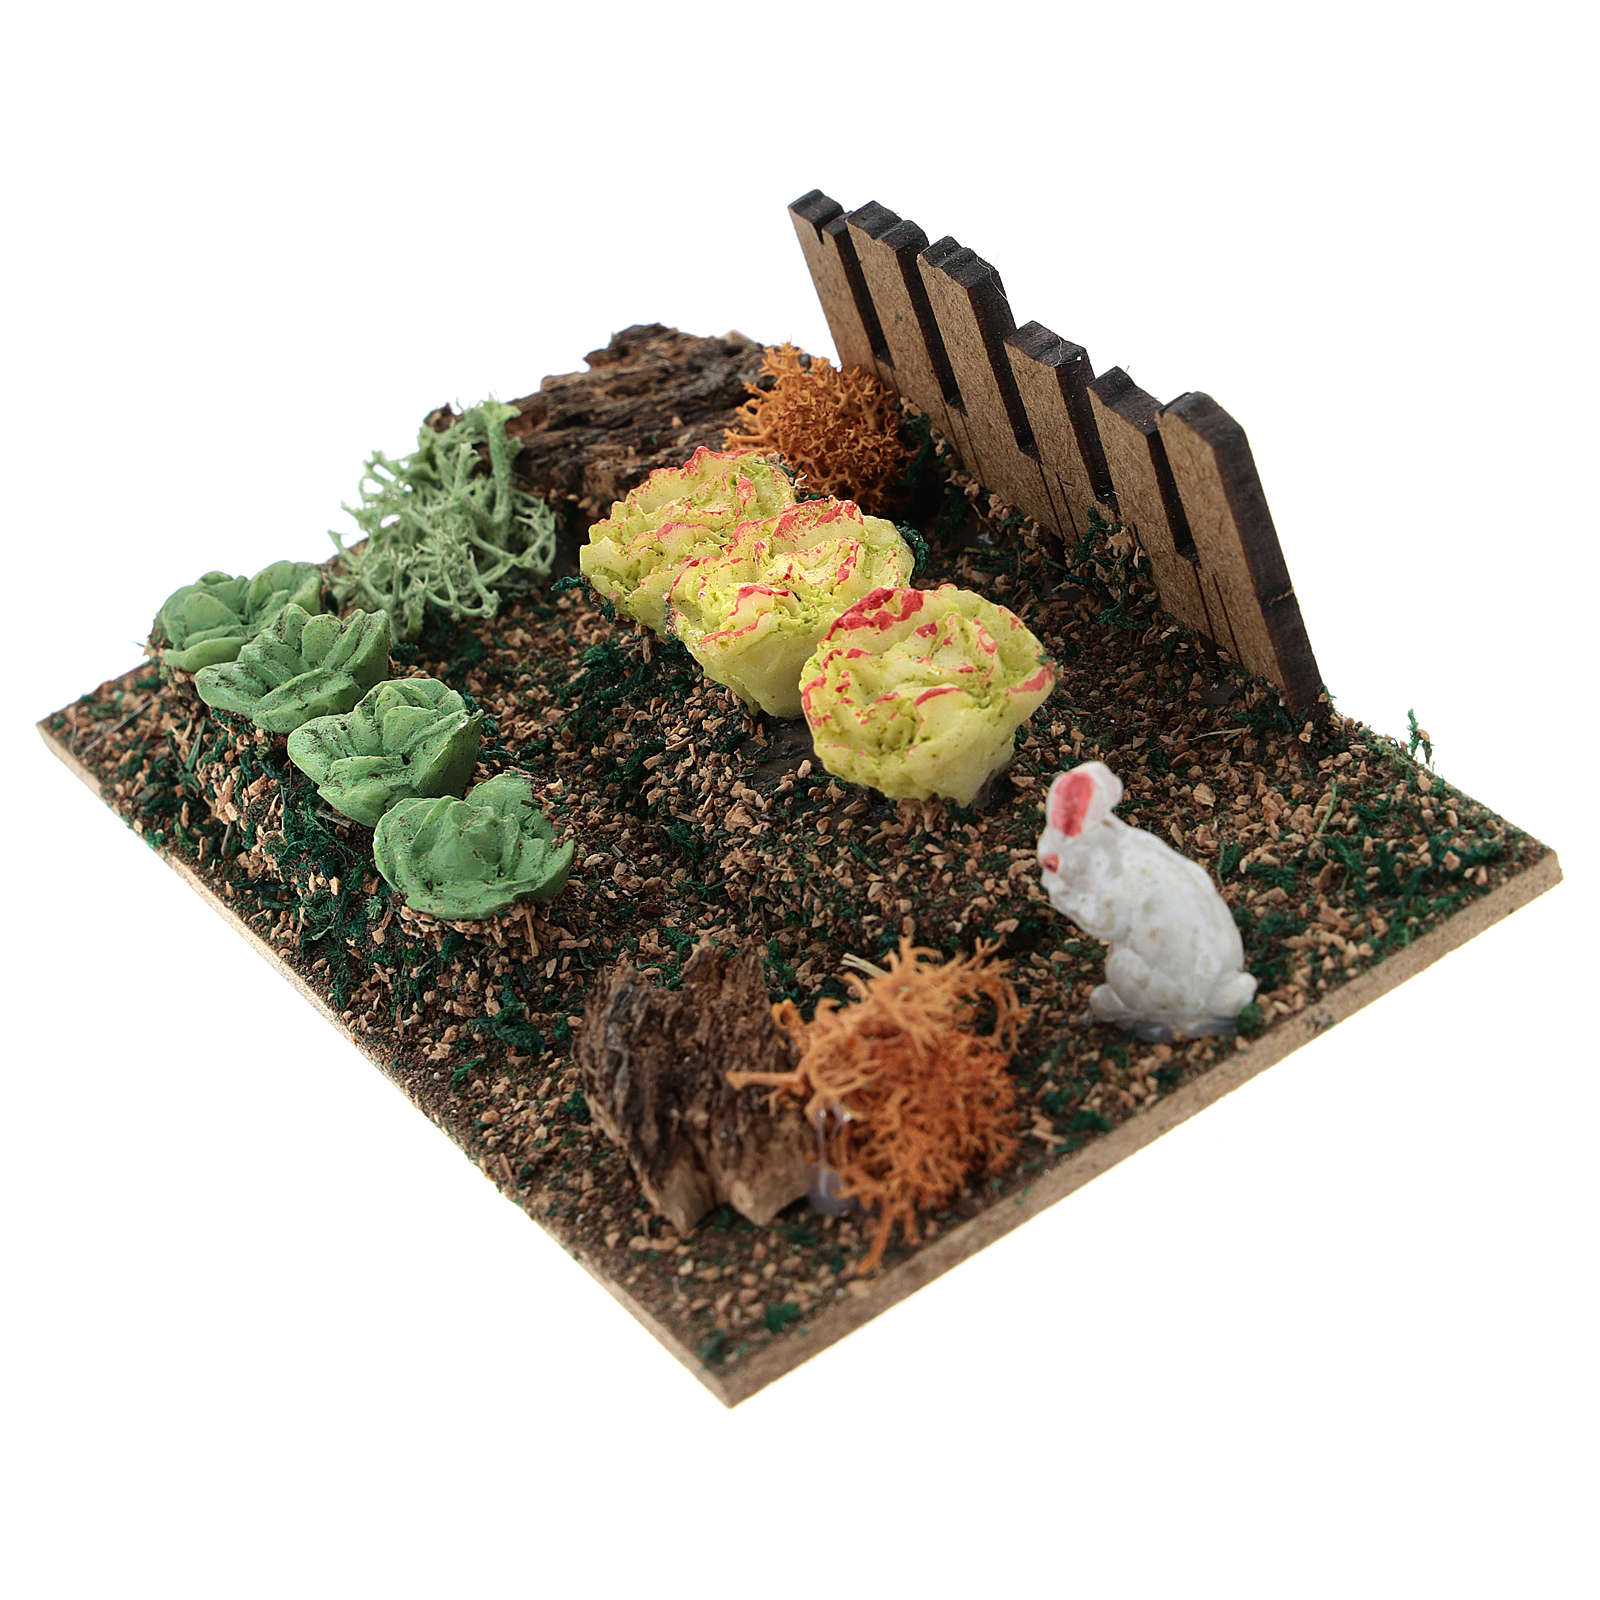 Garden with salad and rabbit for Nativity scene 4